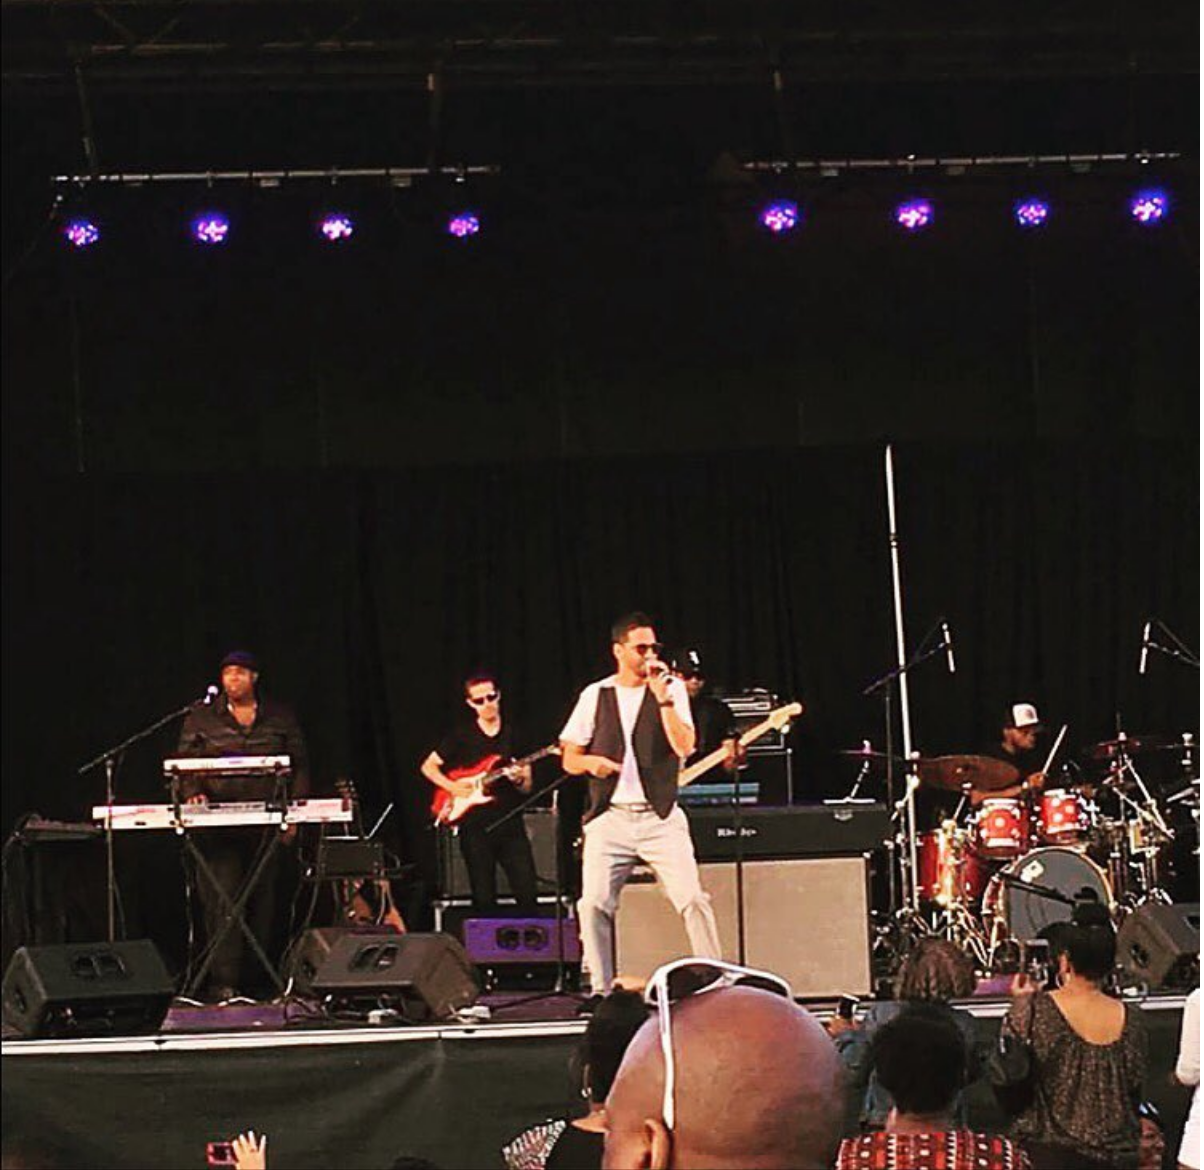 Jon B. Summer Stage